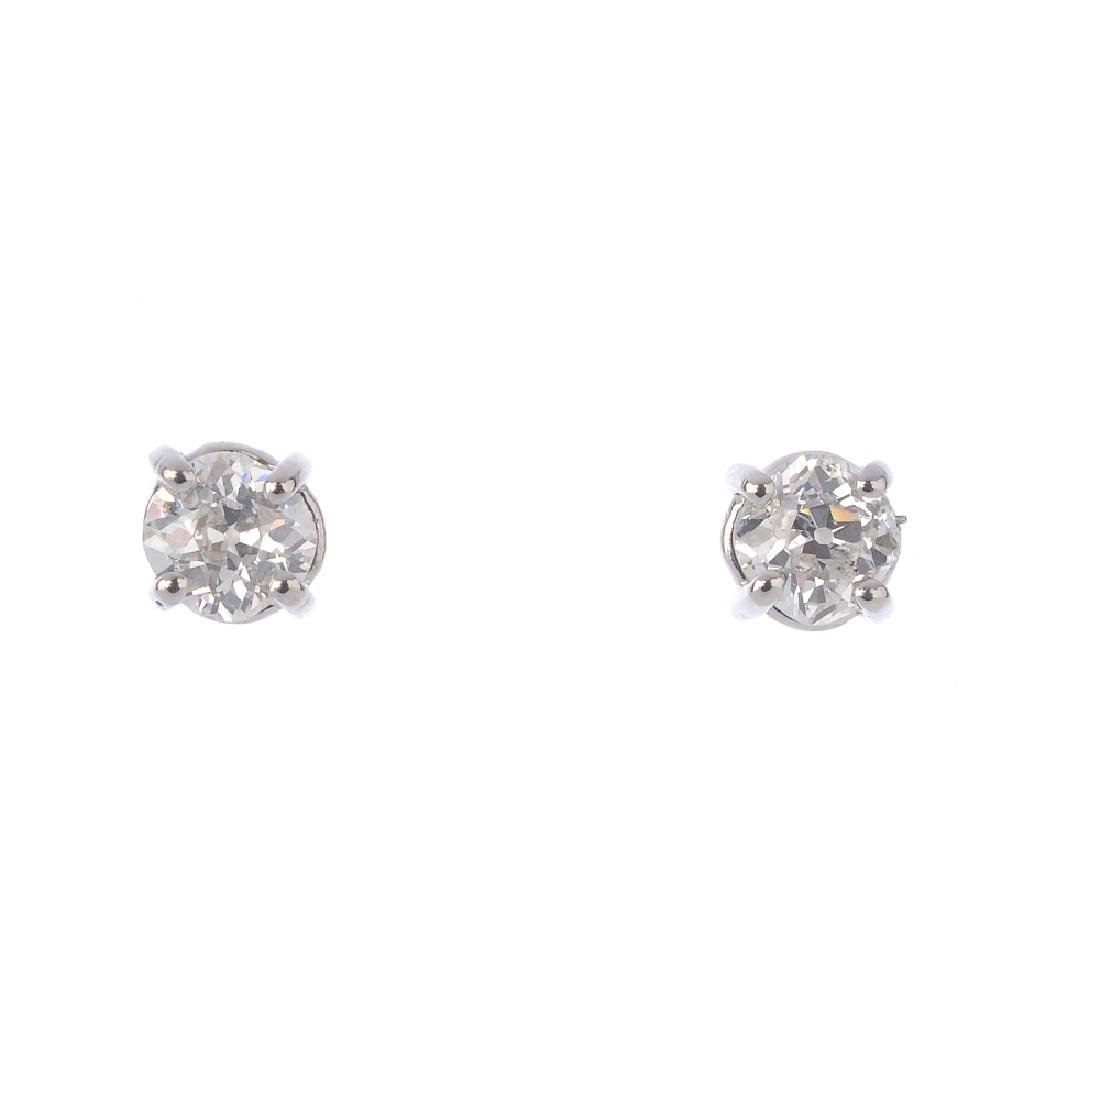 A pair of platinum old-cut diamond stud earrings.